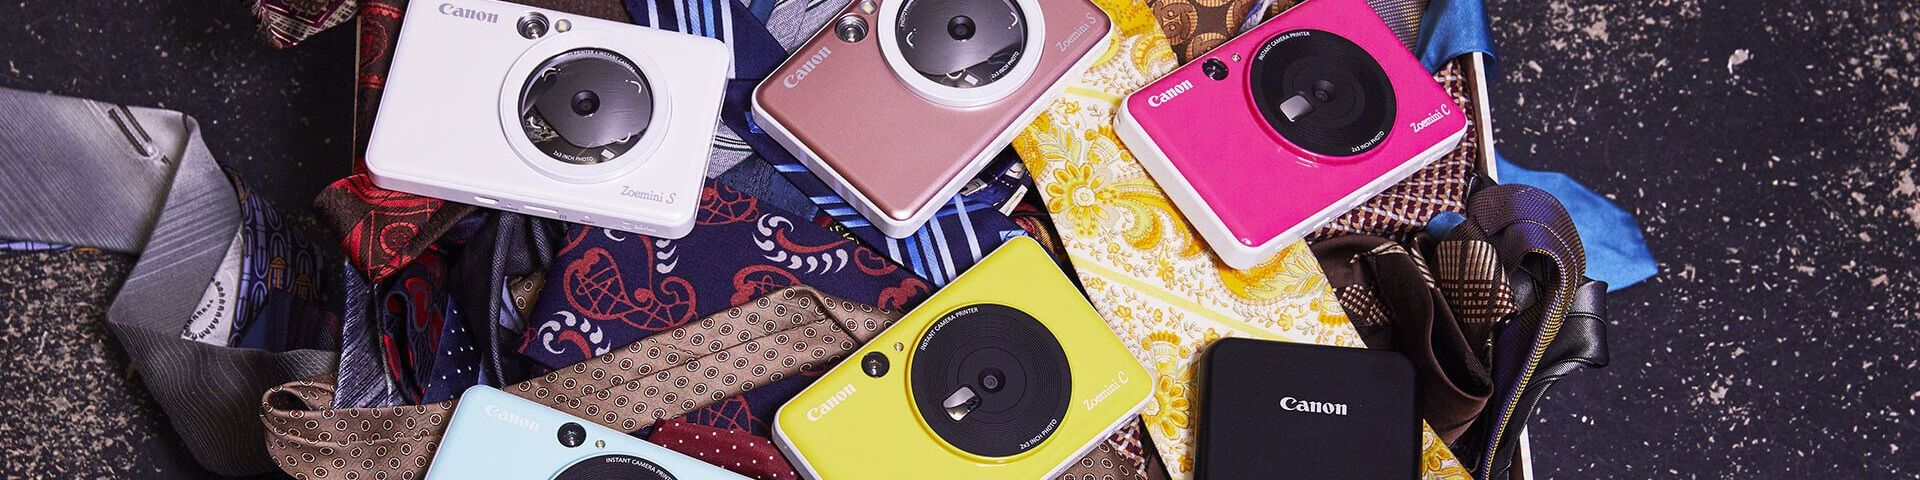 Instant Cameras and Pocket Printers